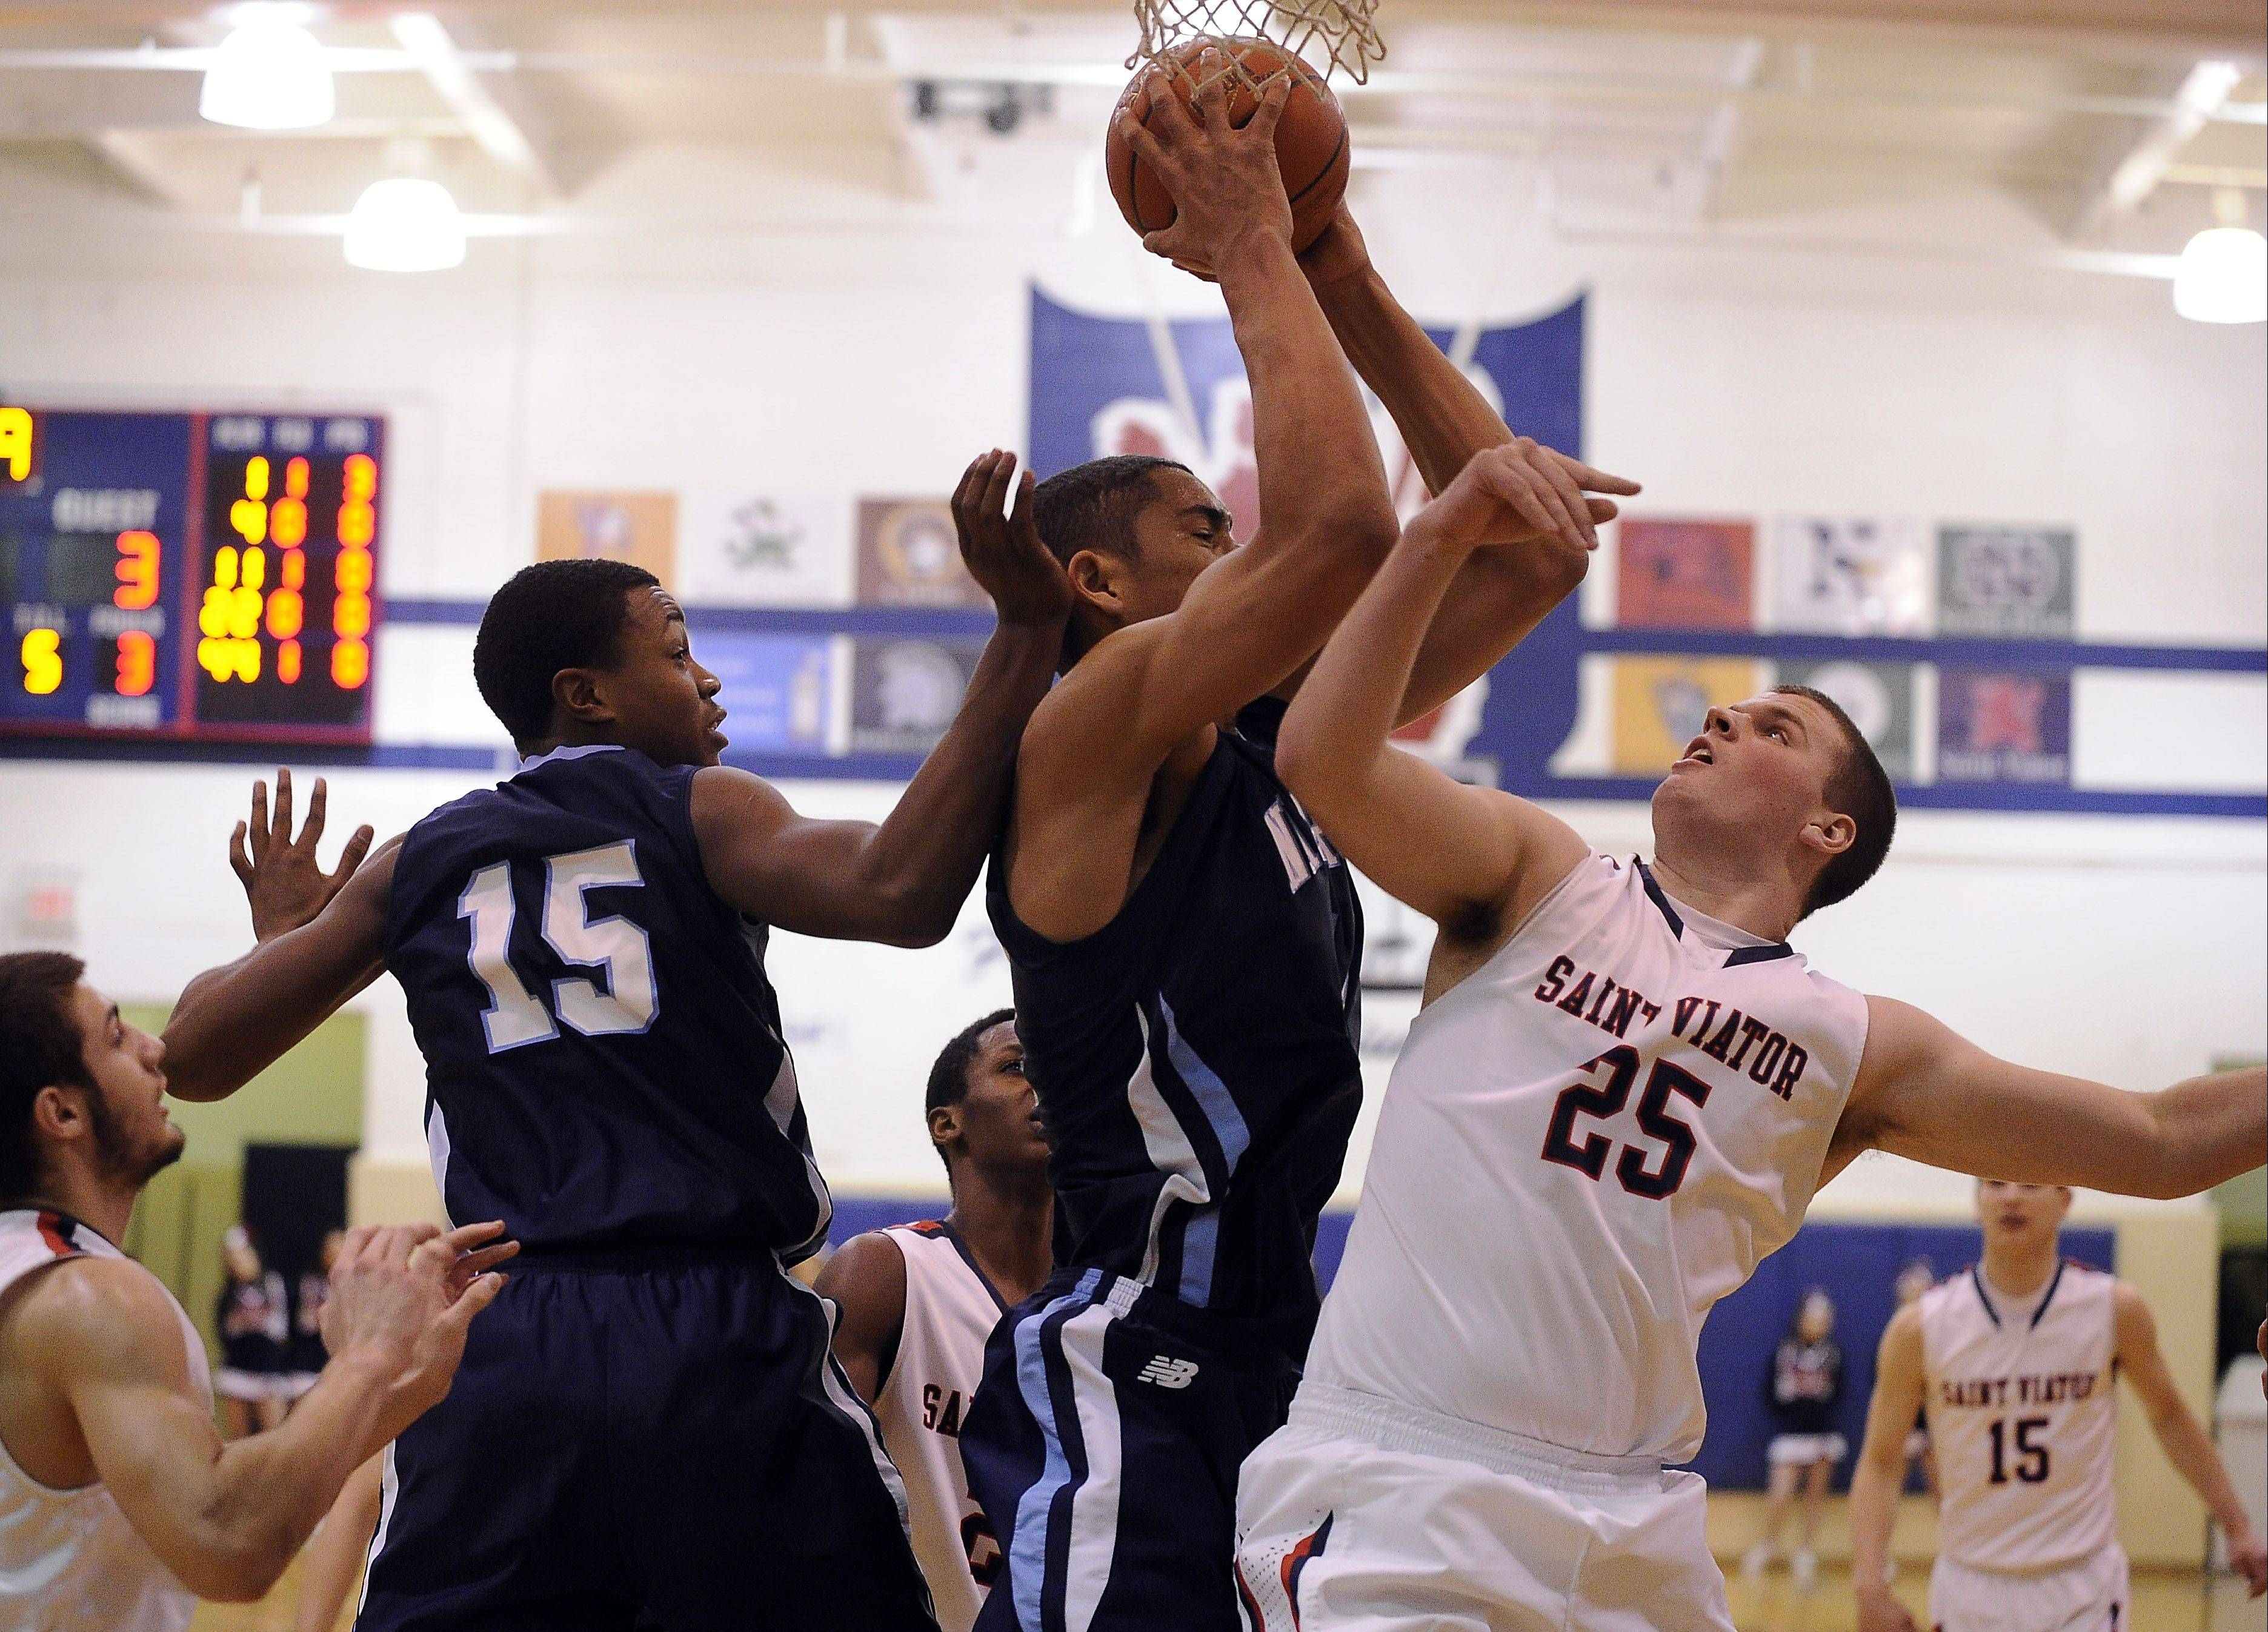 St. Viator's Hugh Masterson battles with Nazareth's Tyler Jackson for the rebound in the first half at St. Viator on Monday.